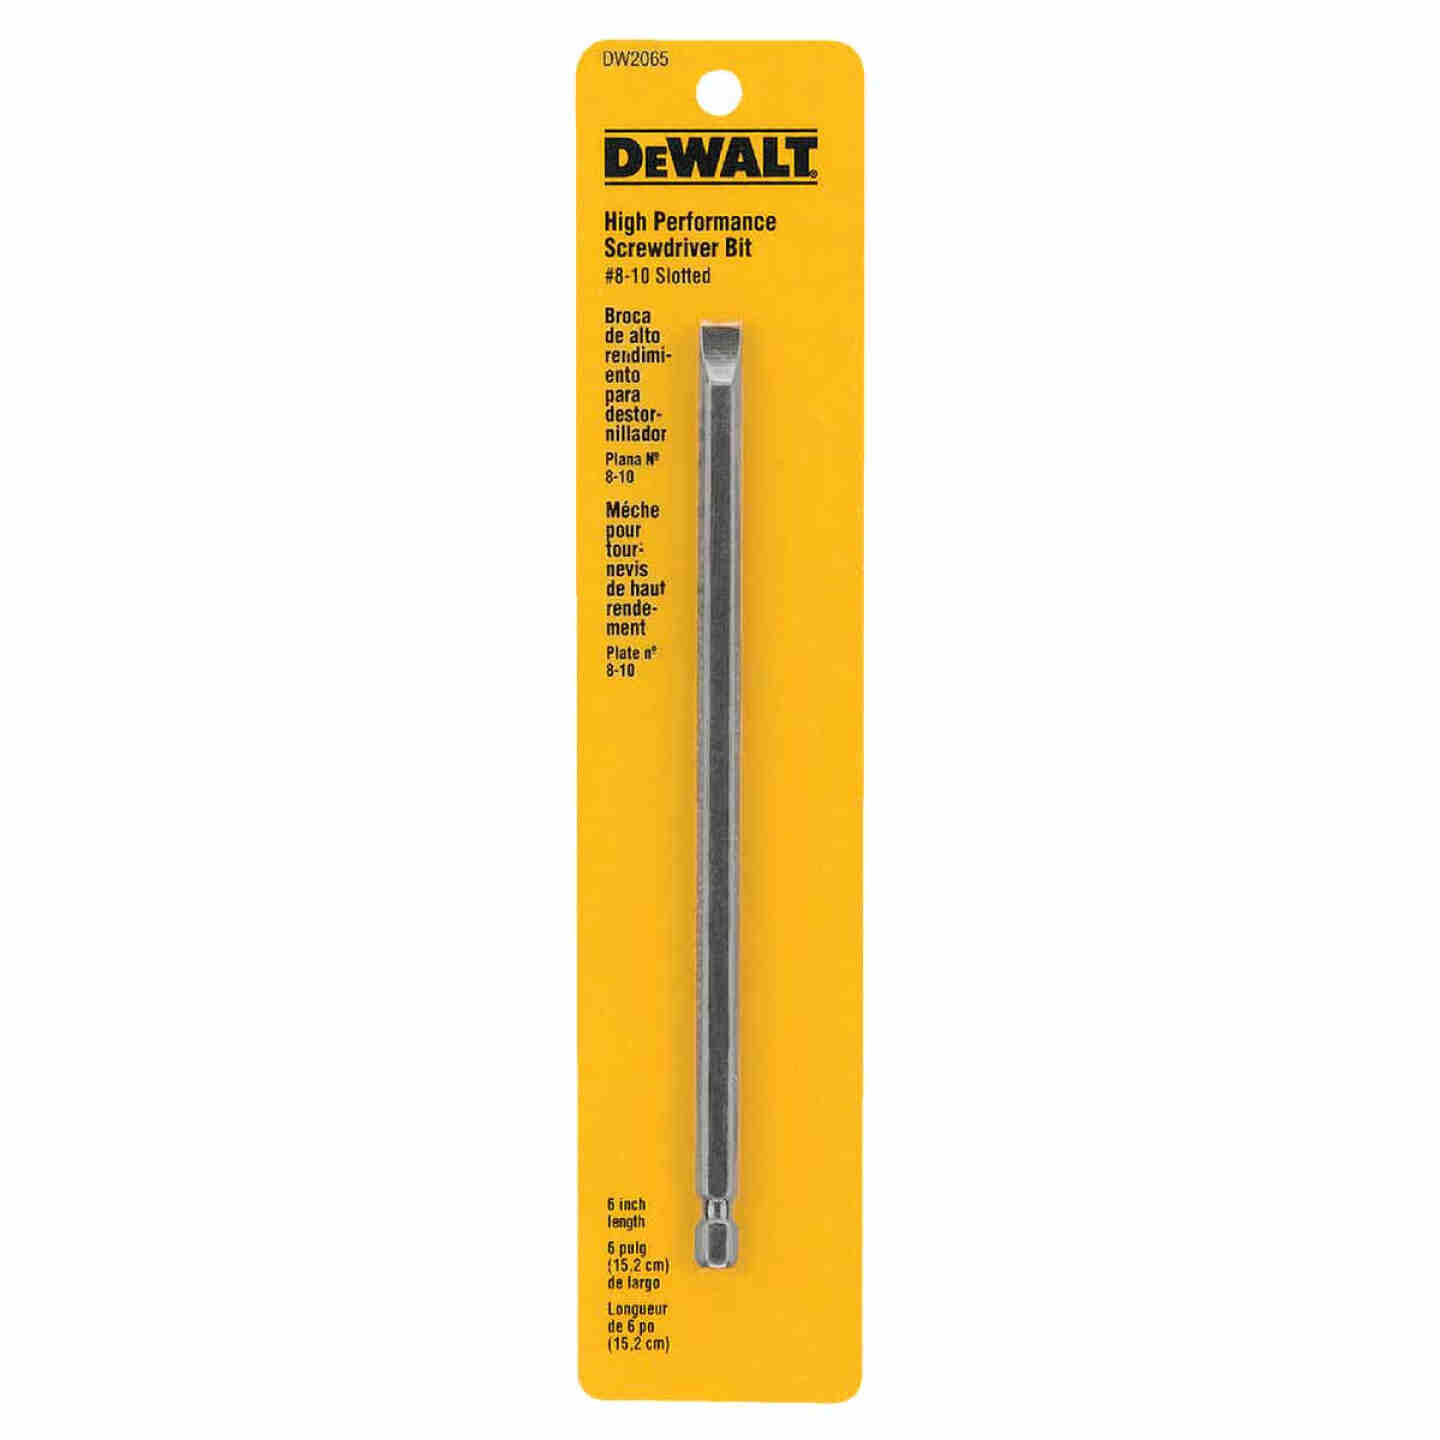 DeWalt Slotted #8-10 6 In. 1/4 In. Power Screwdriver Bit Image 1